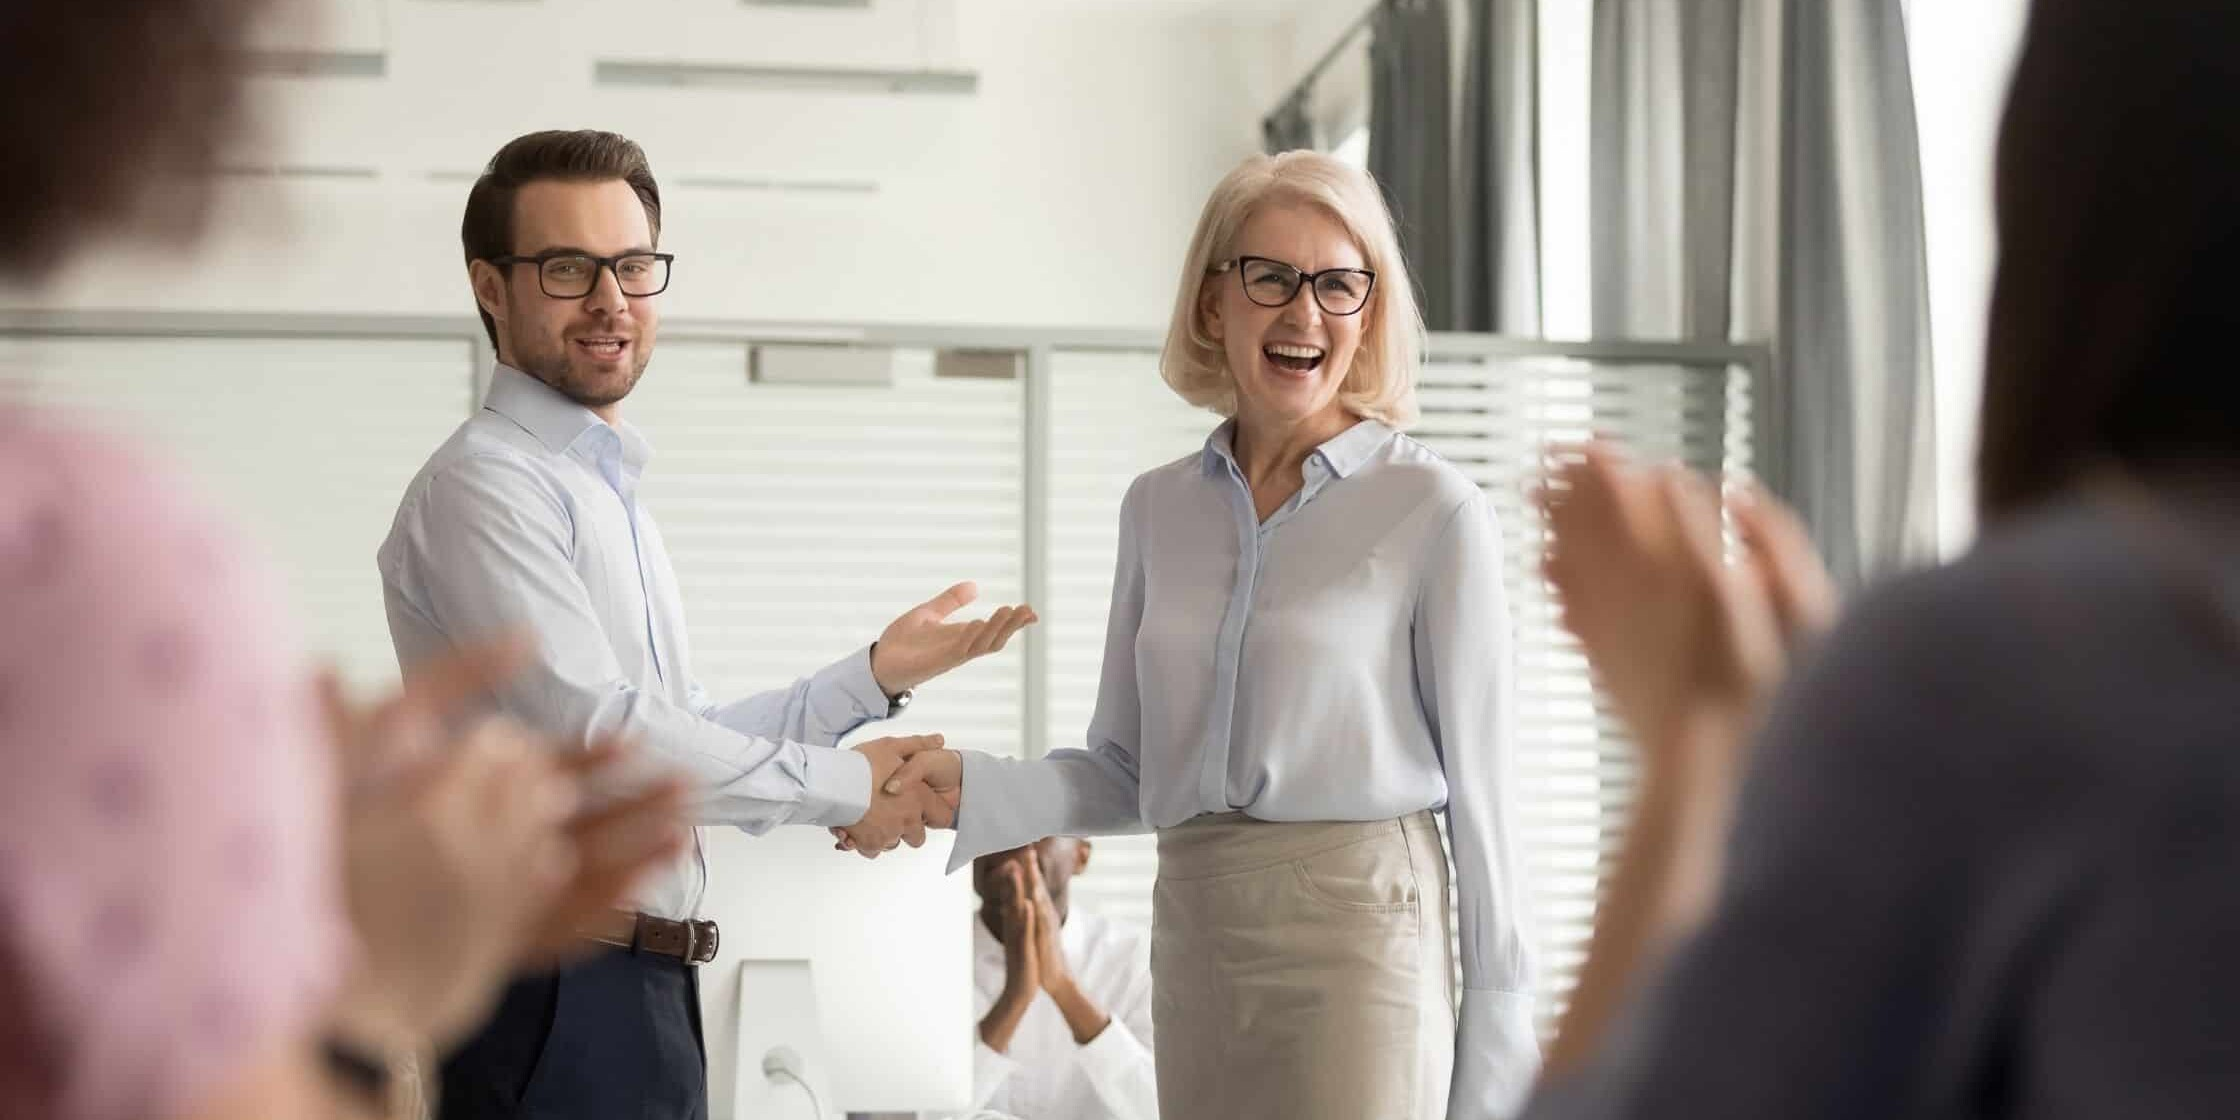 How do deal with a boss who doesn't show appreciation?